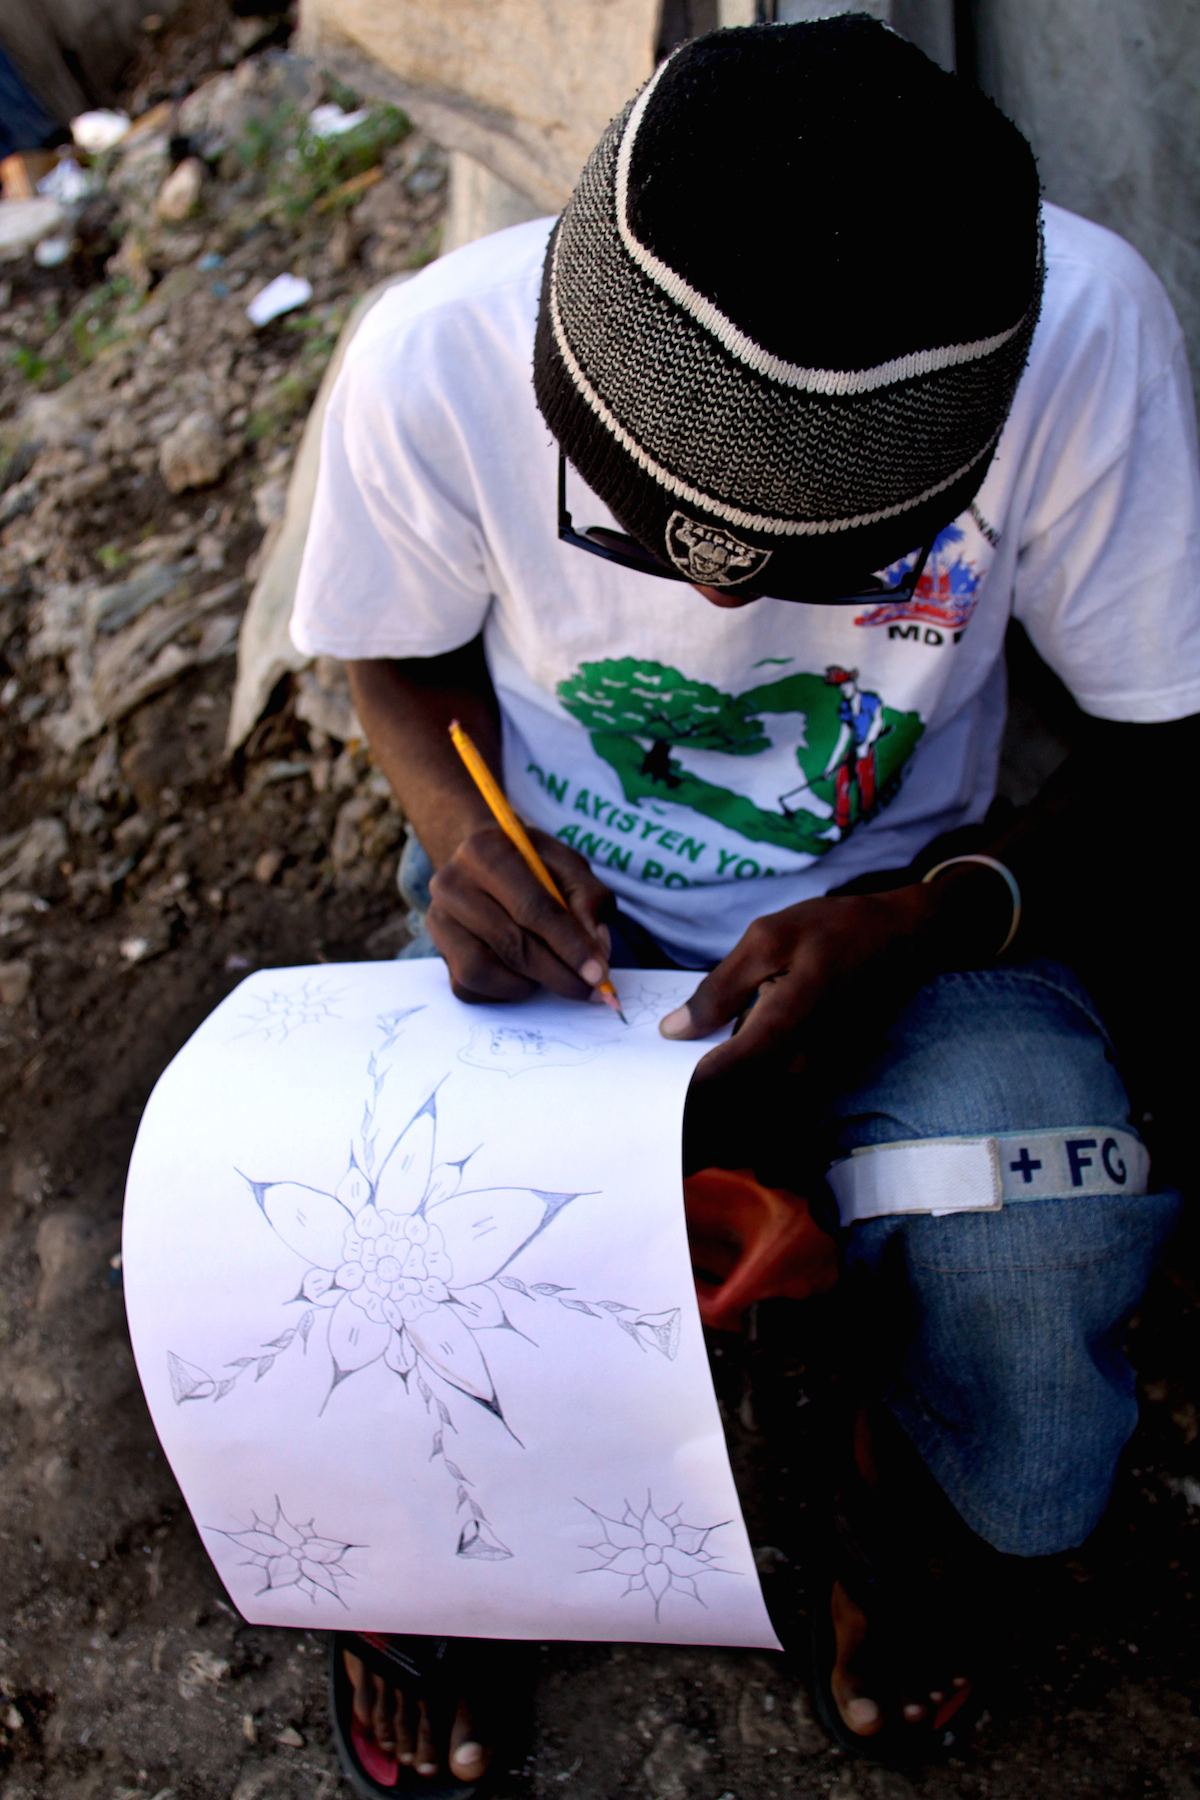 Acra 2 resident Gerry Bissainthe draws outside his tent in the camp.